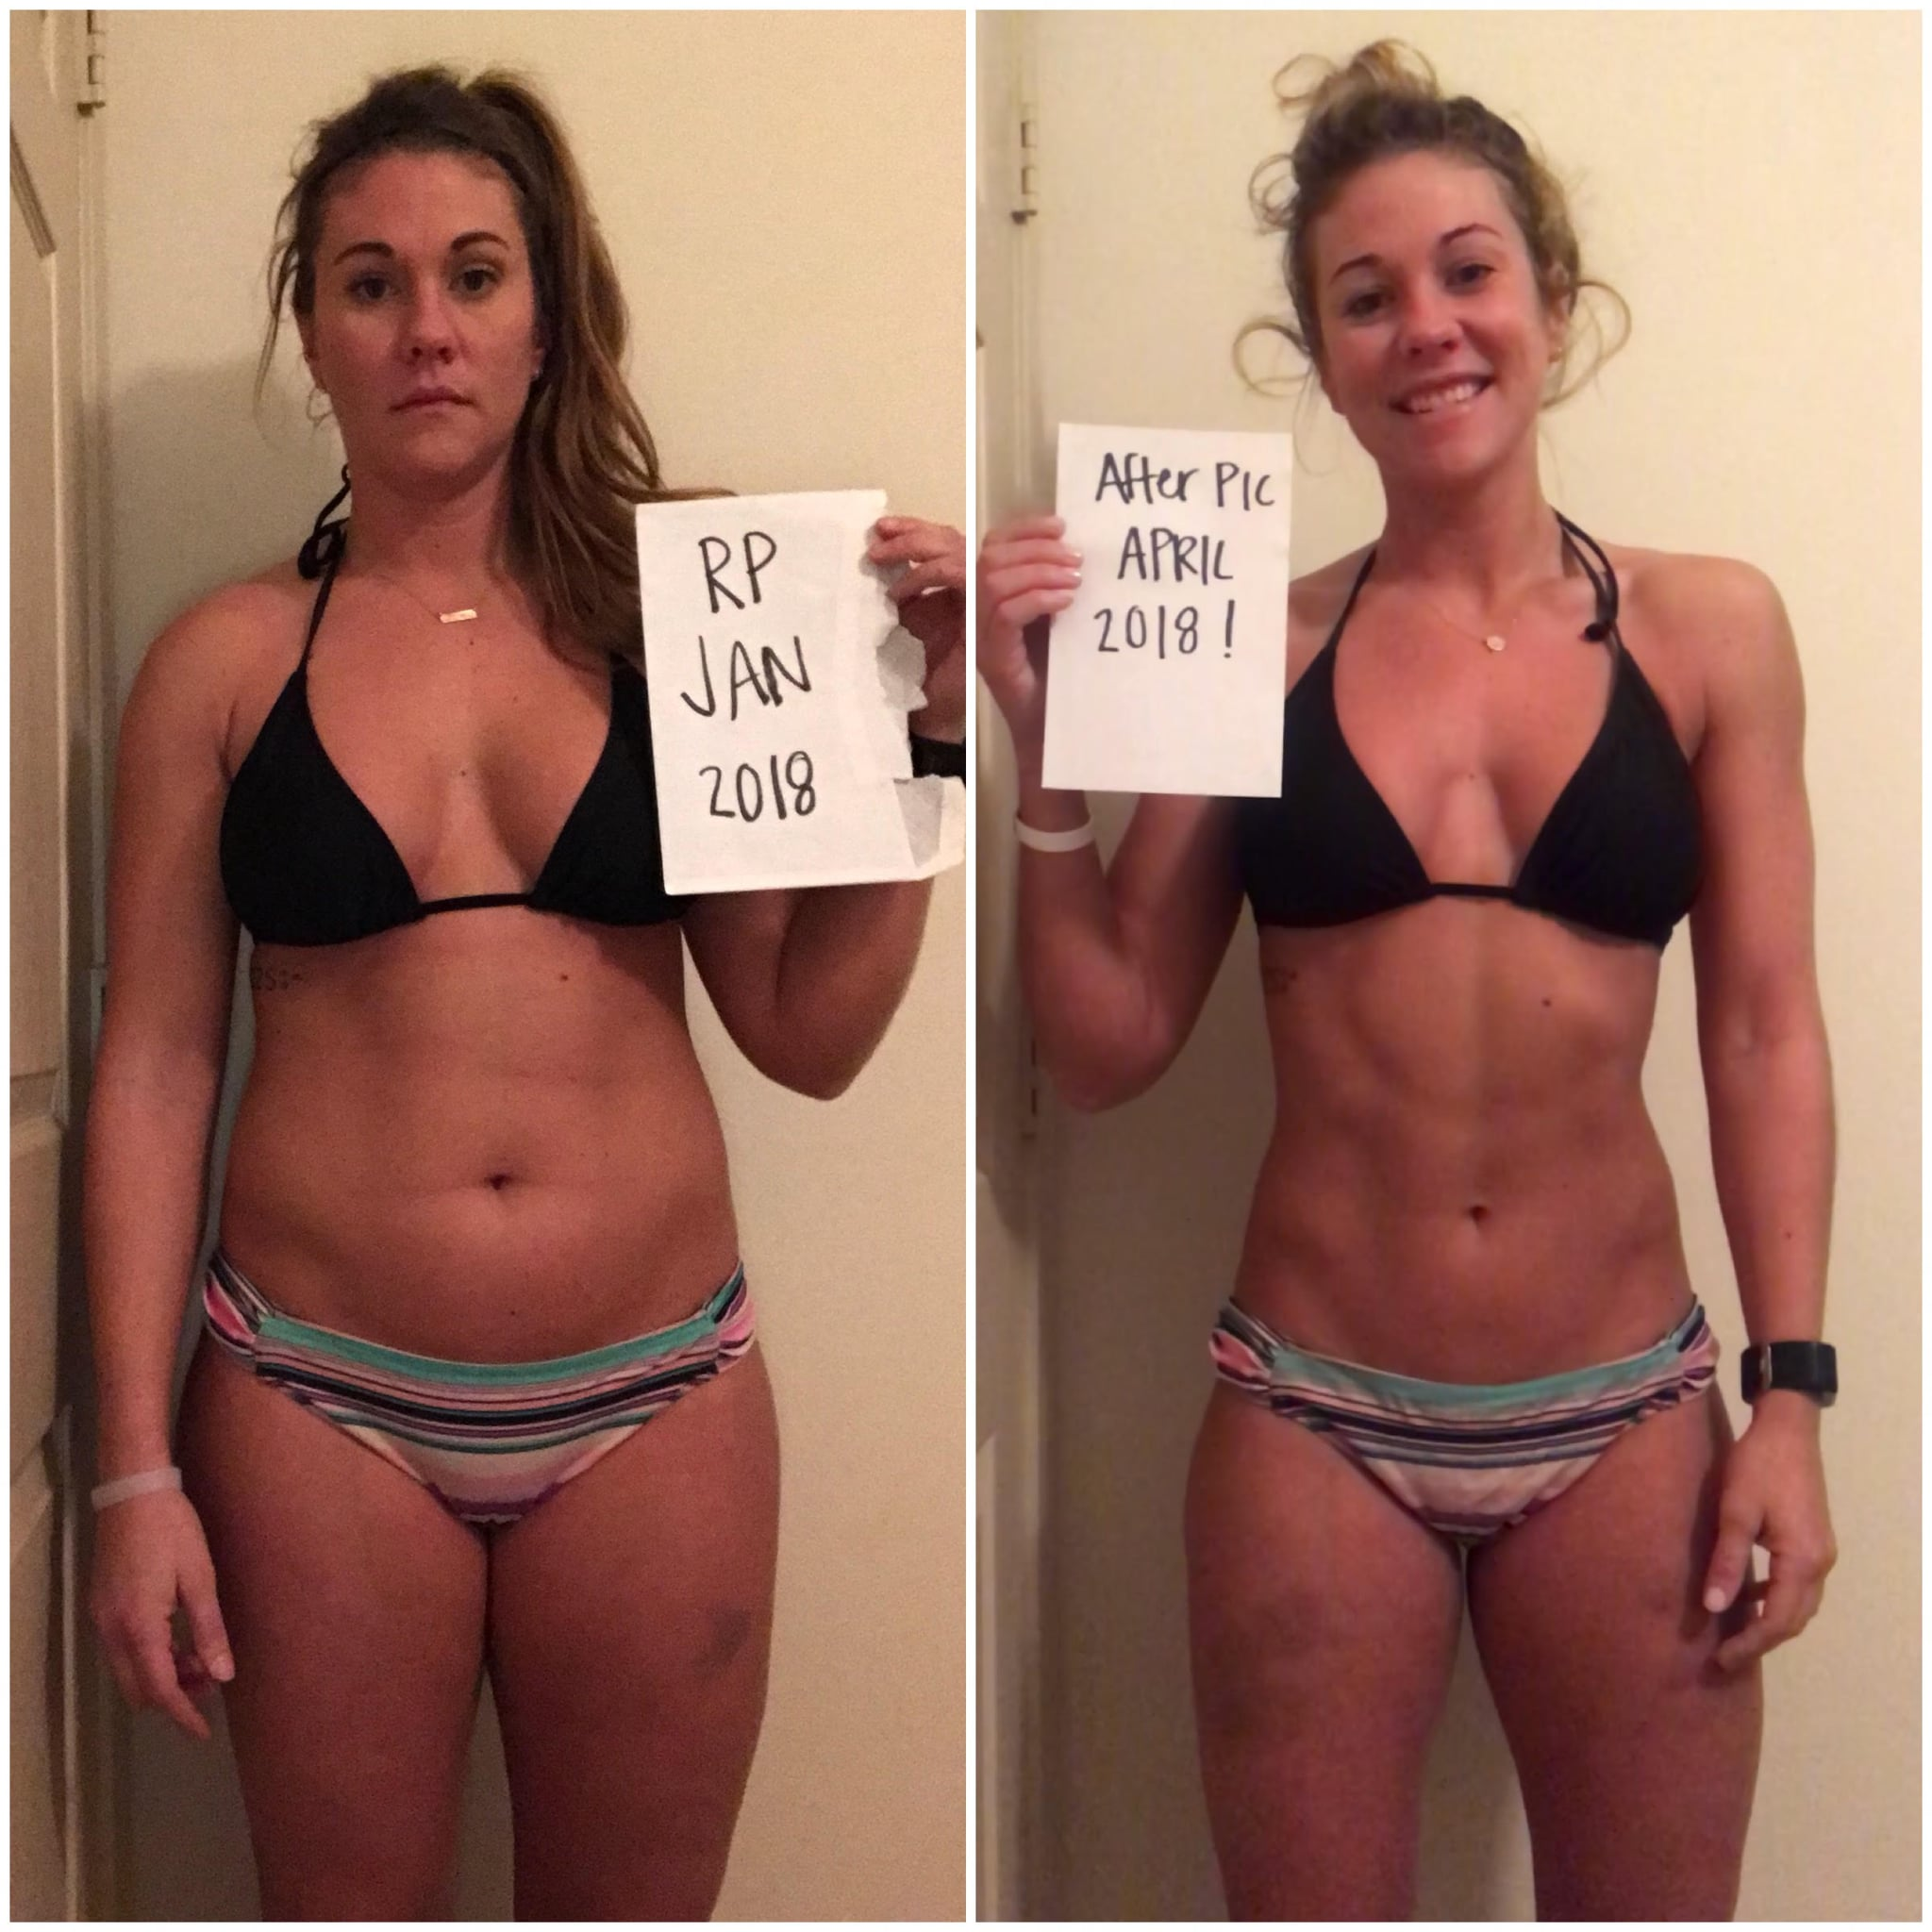 This Is the Nutrition Program That Helped Haley Drop 30 Pounds in 3 Months